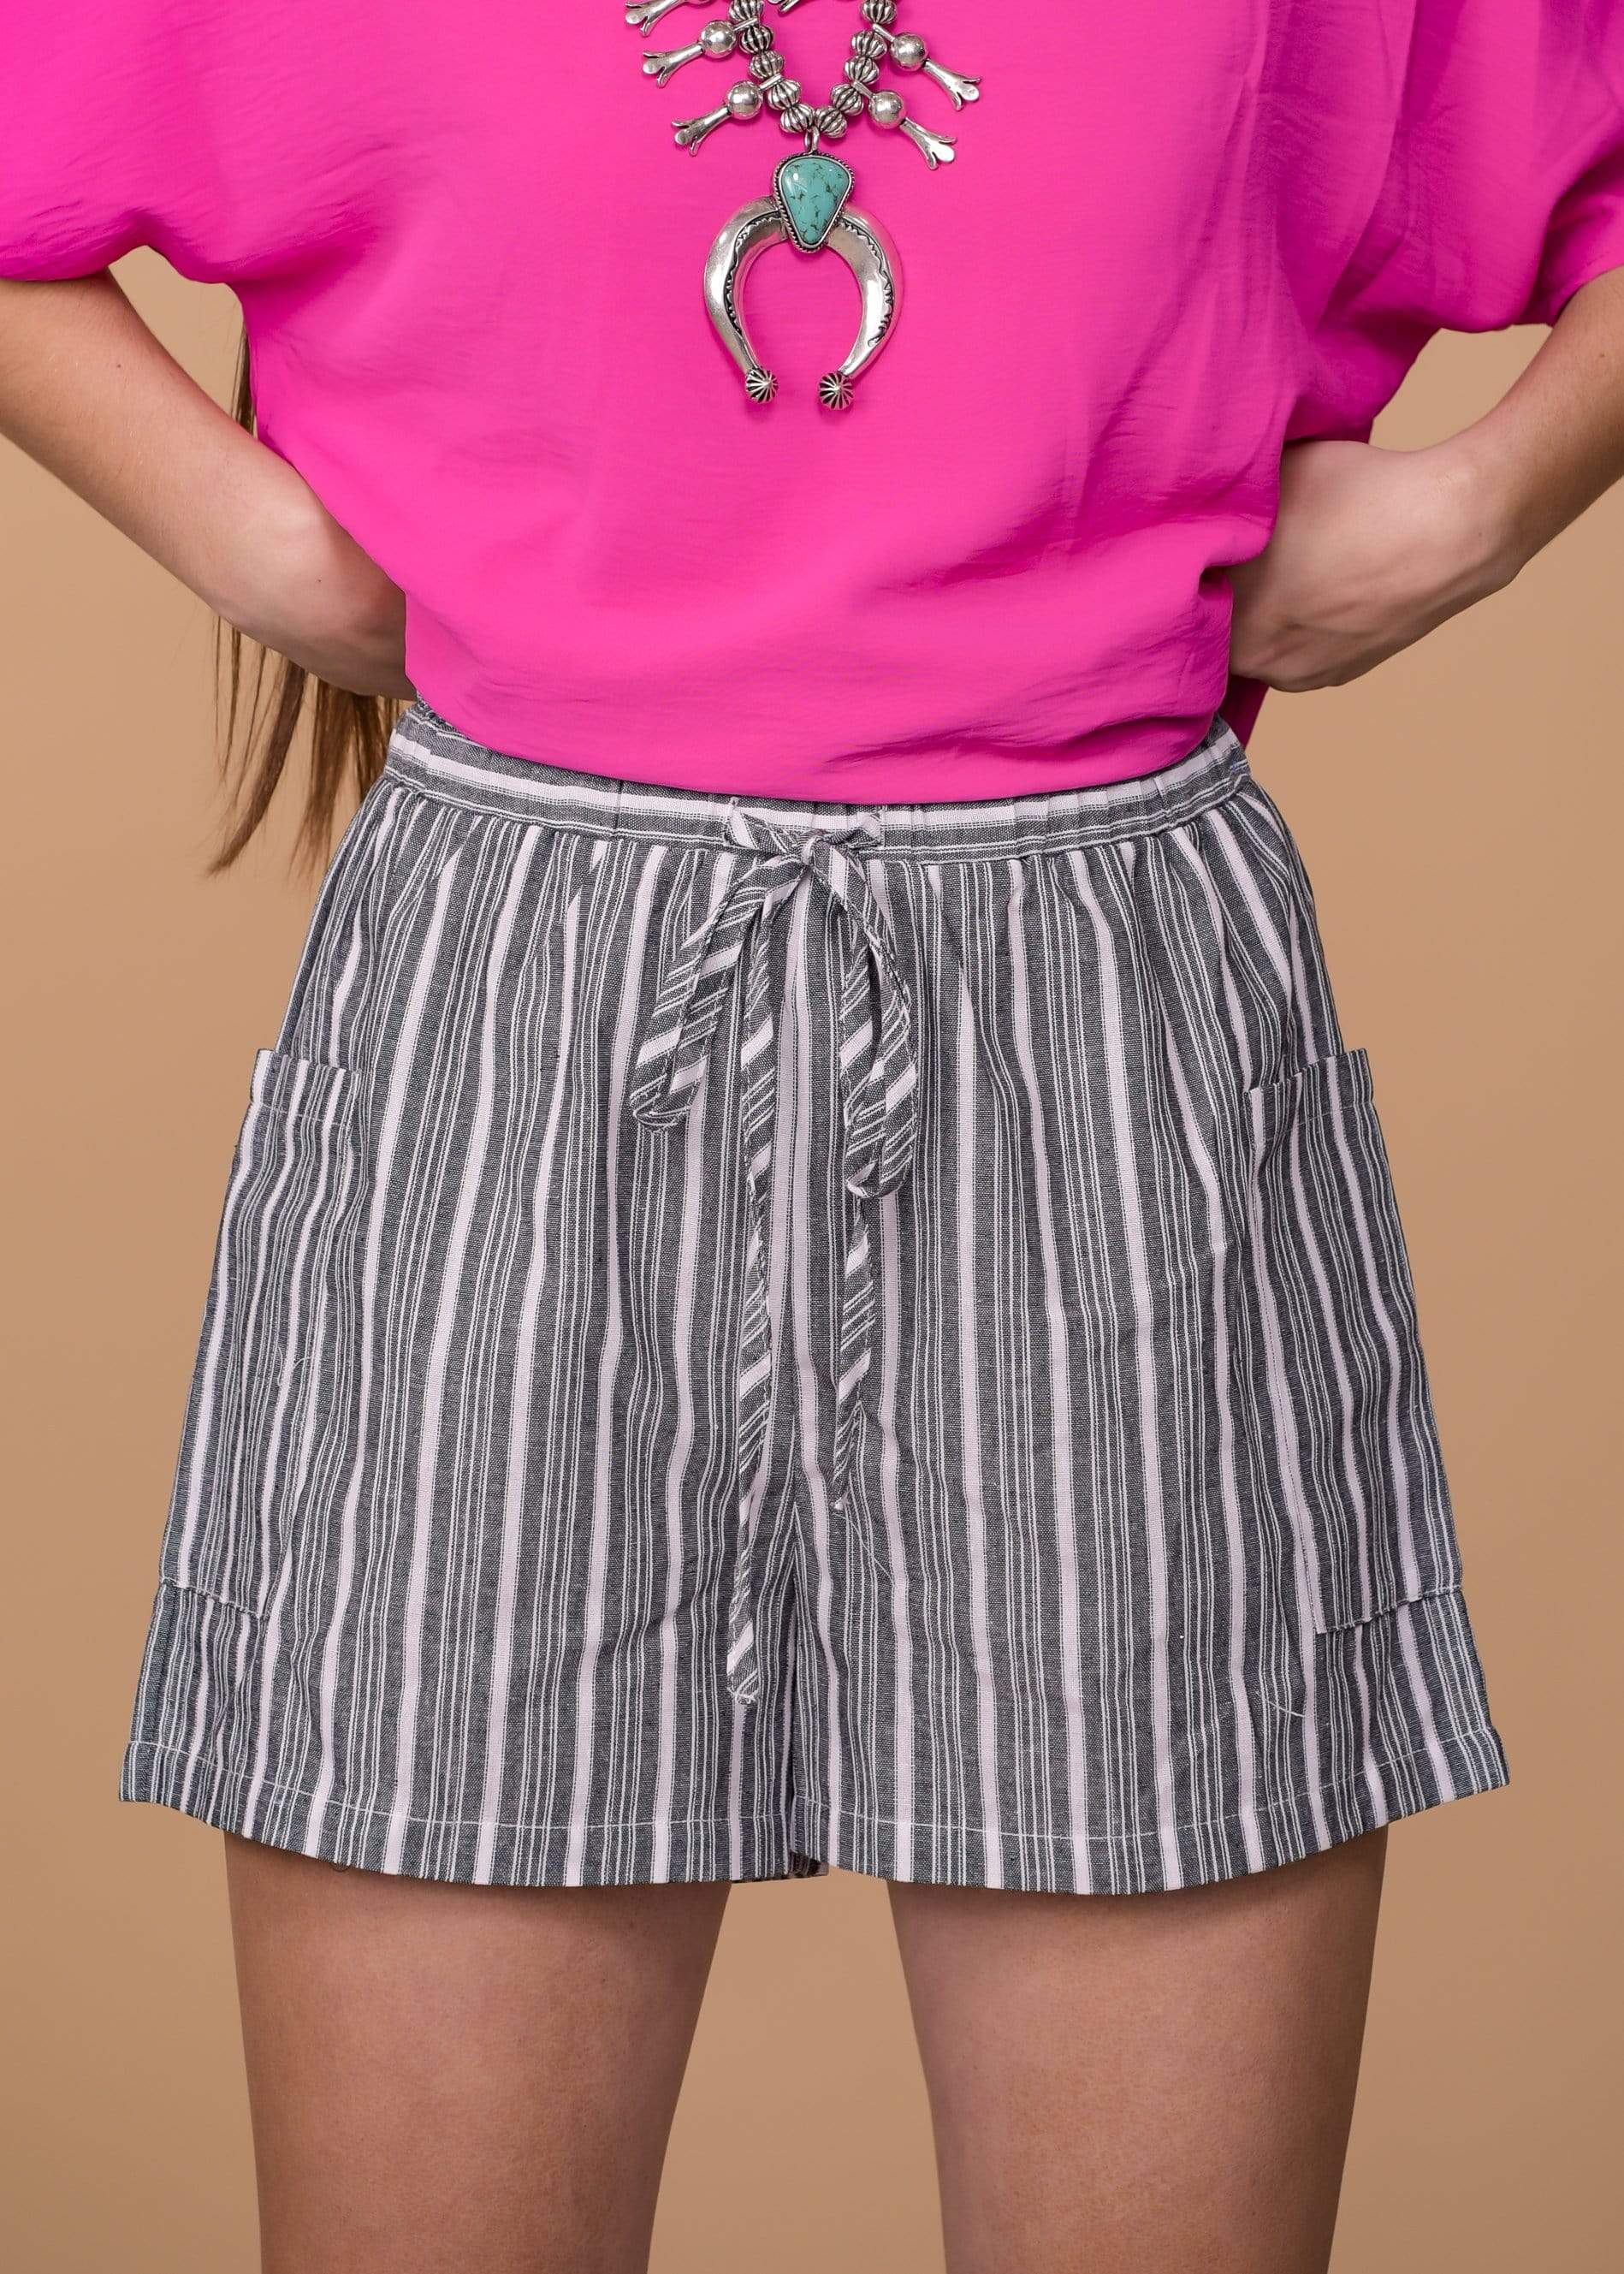 Striped Shorts With Tie Waist - Black